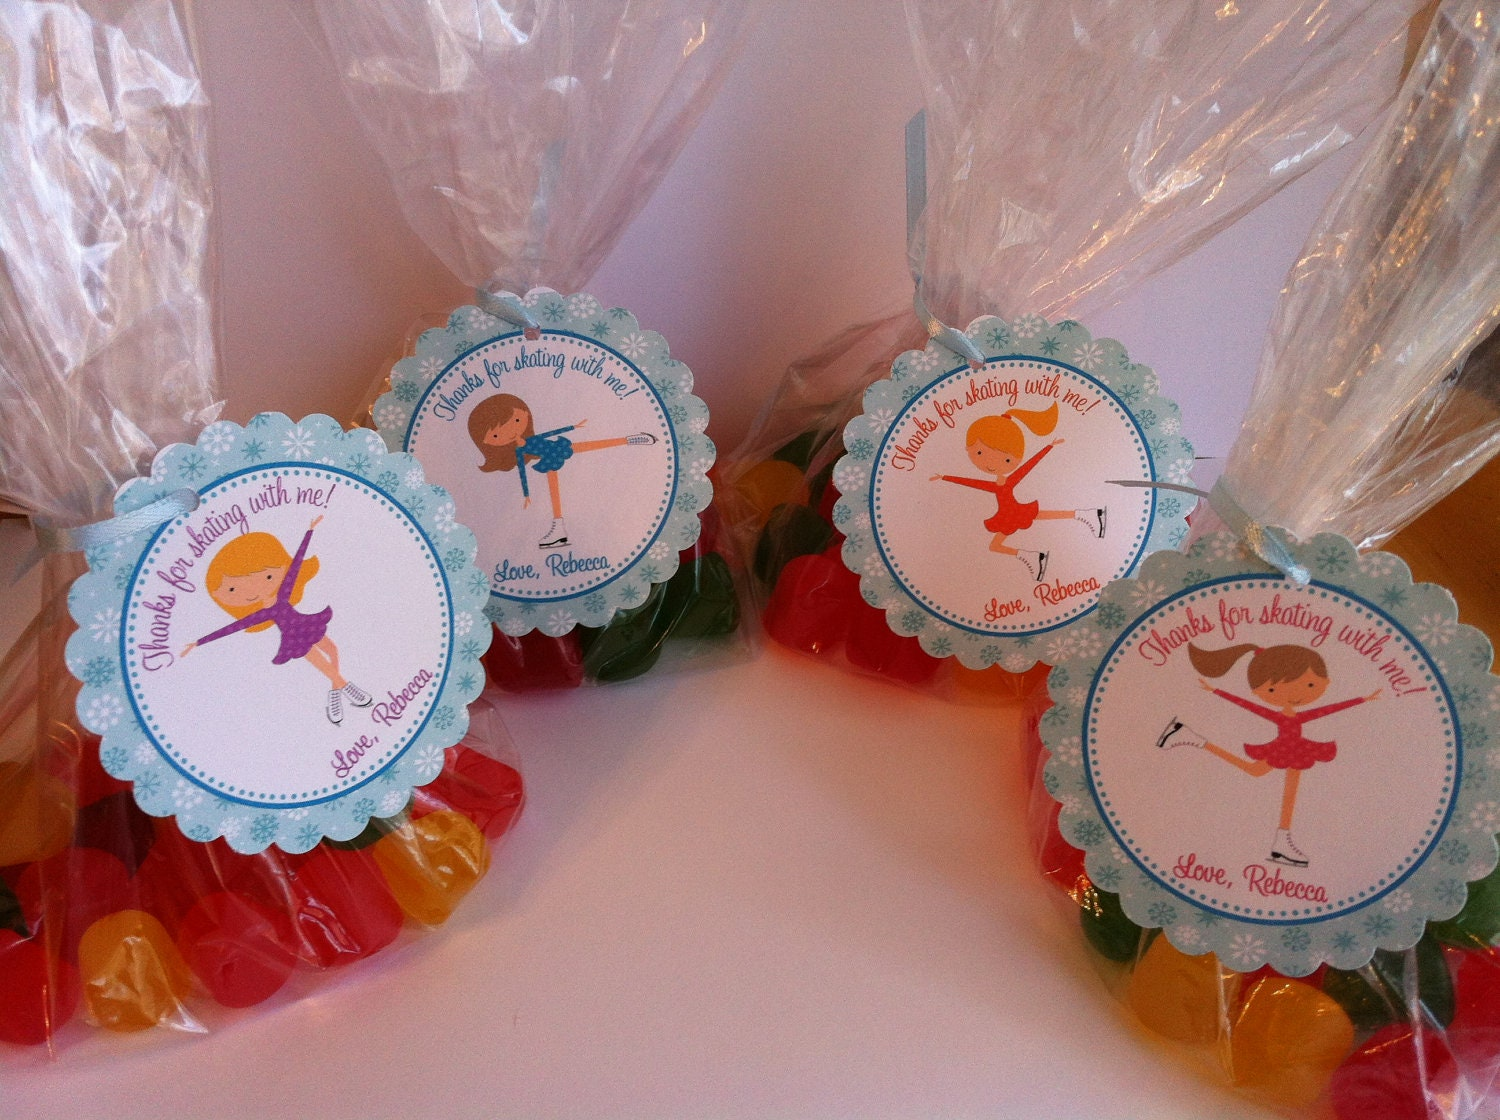 Roller skating party favors - Ice Skating Party Favor Bags